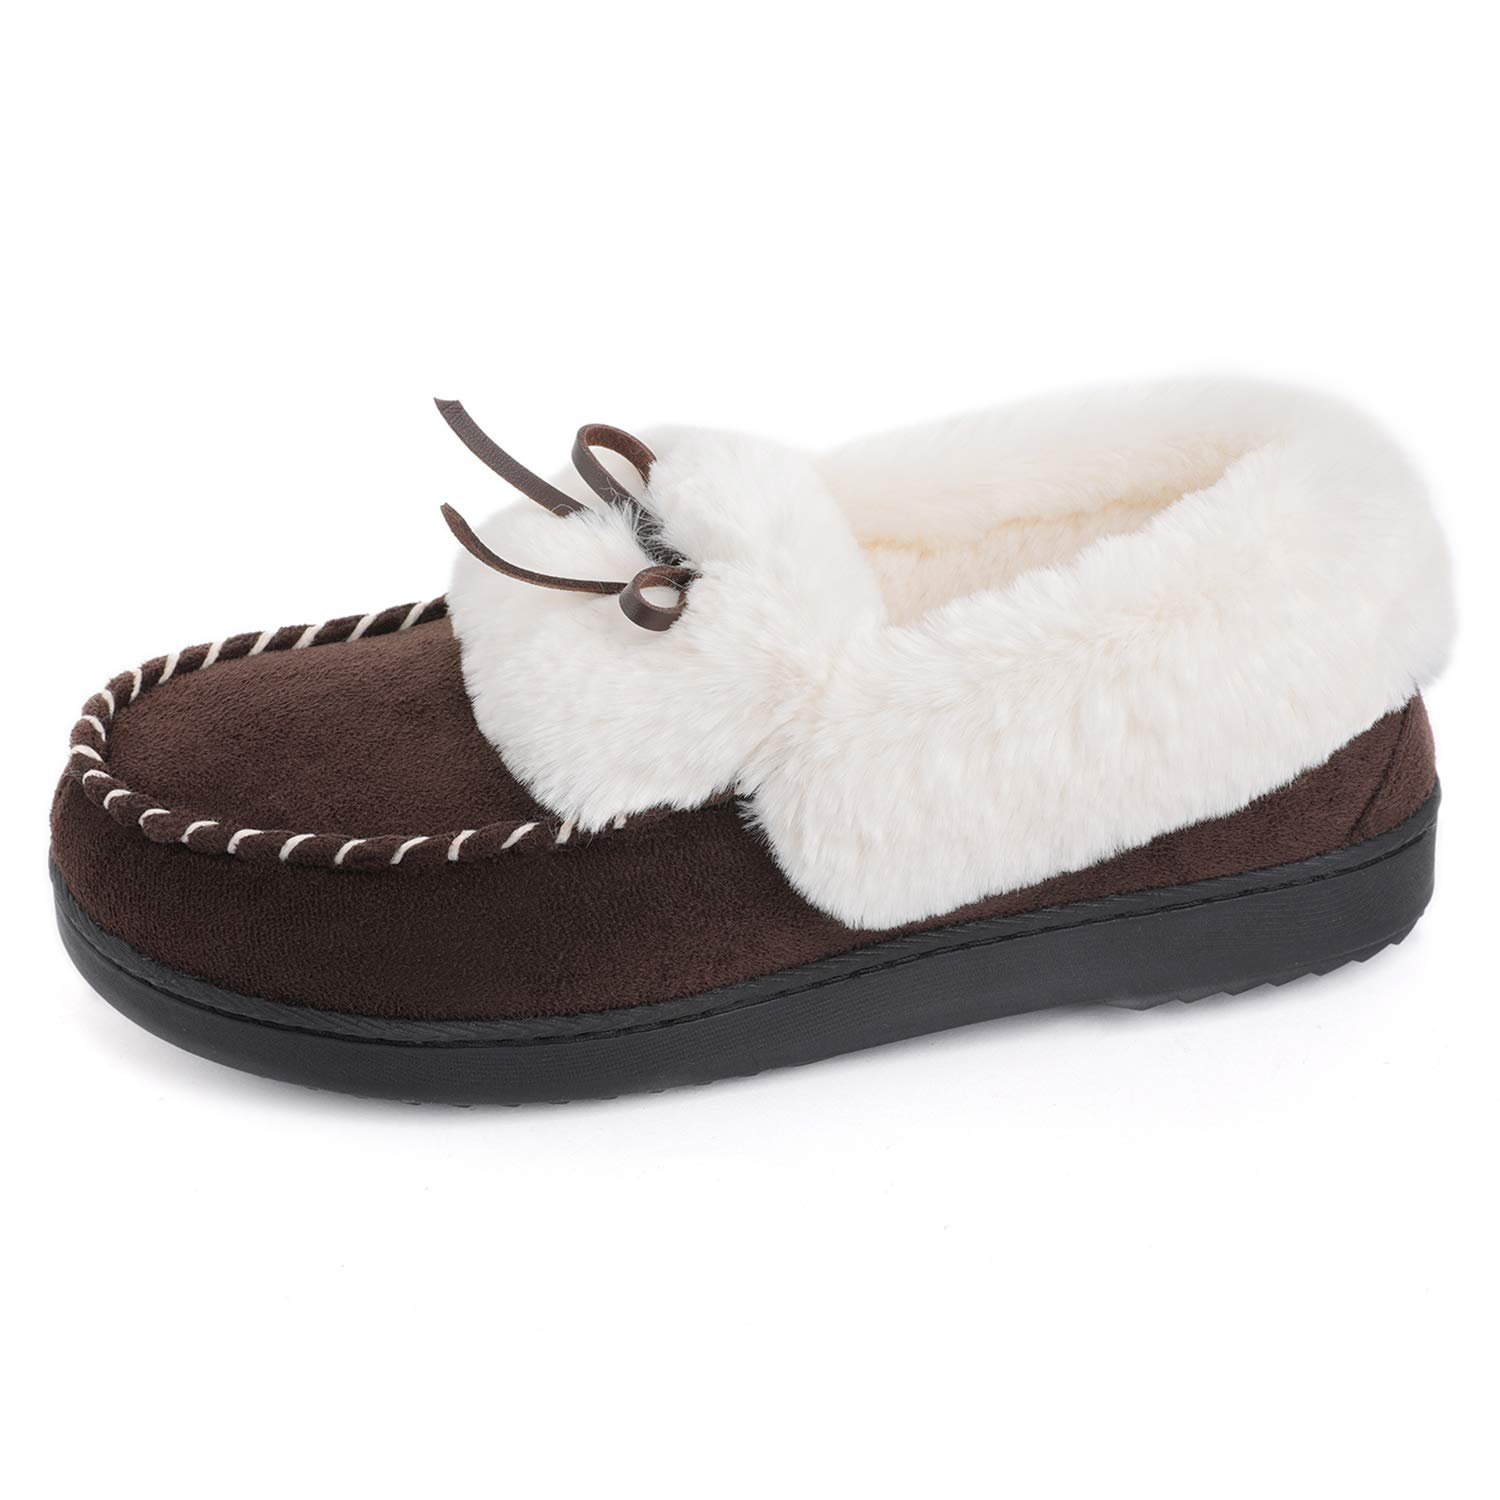 Image of Affordable Quality Moccasin Slippers for Women